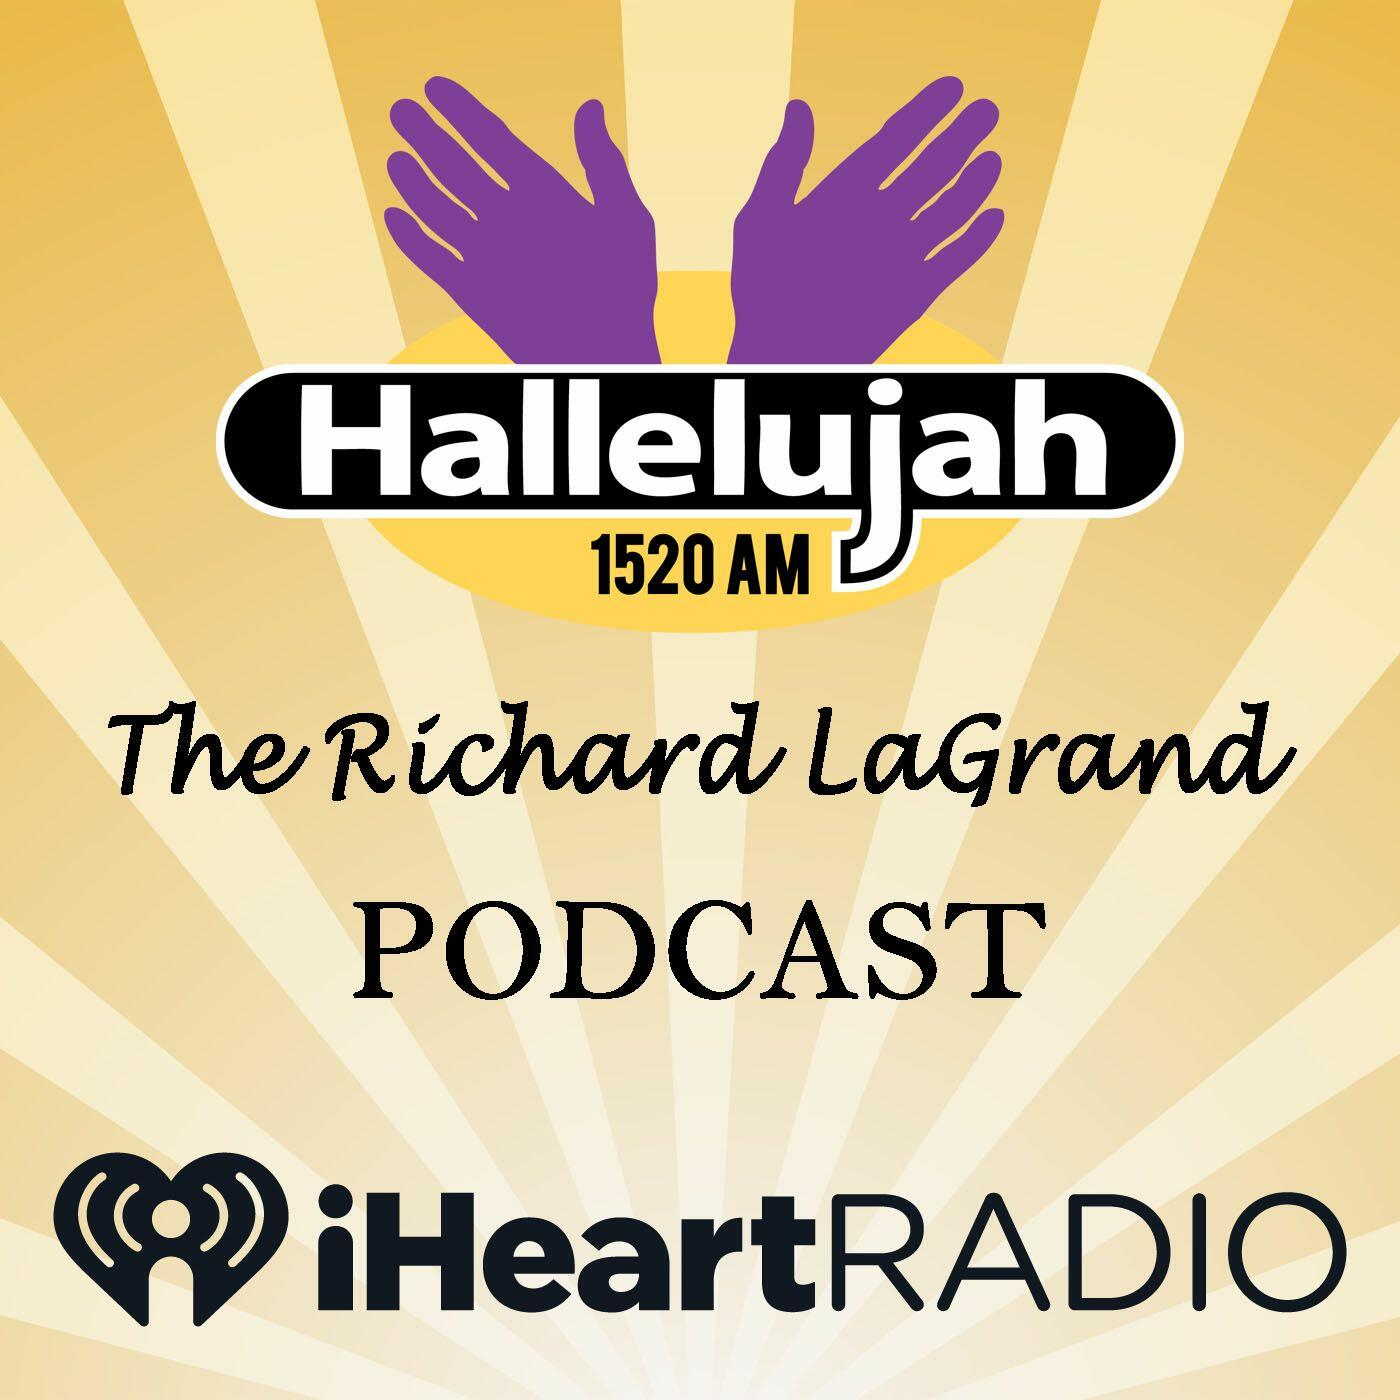 The Richard LaGrand Podcast